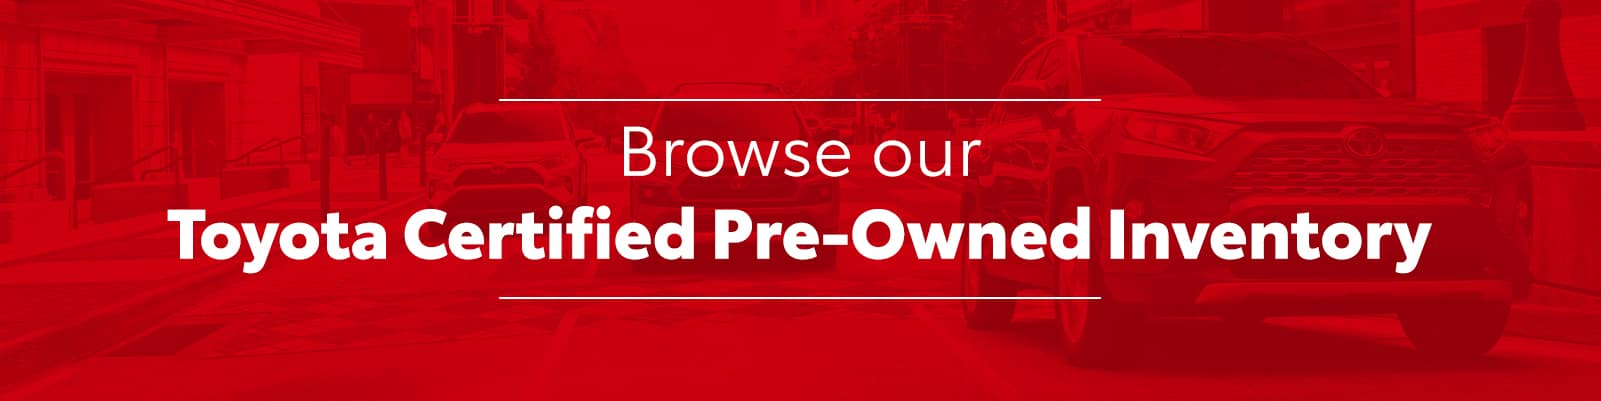 Browse Toyota CPO Inventory